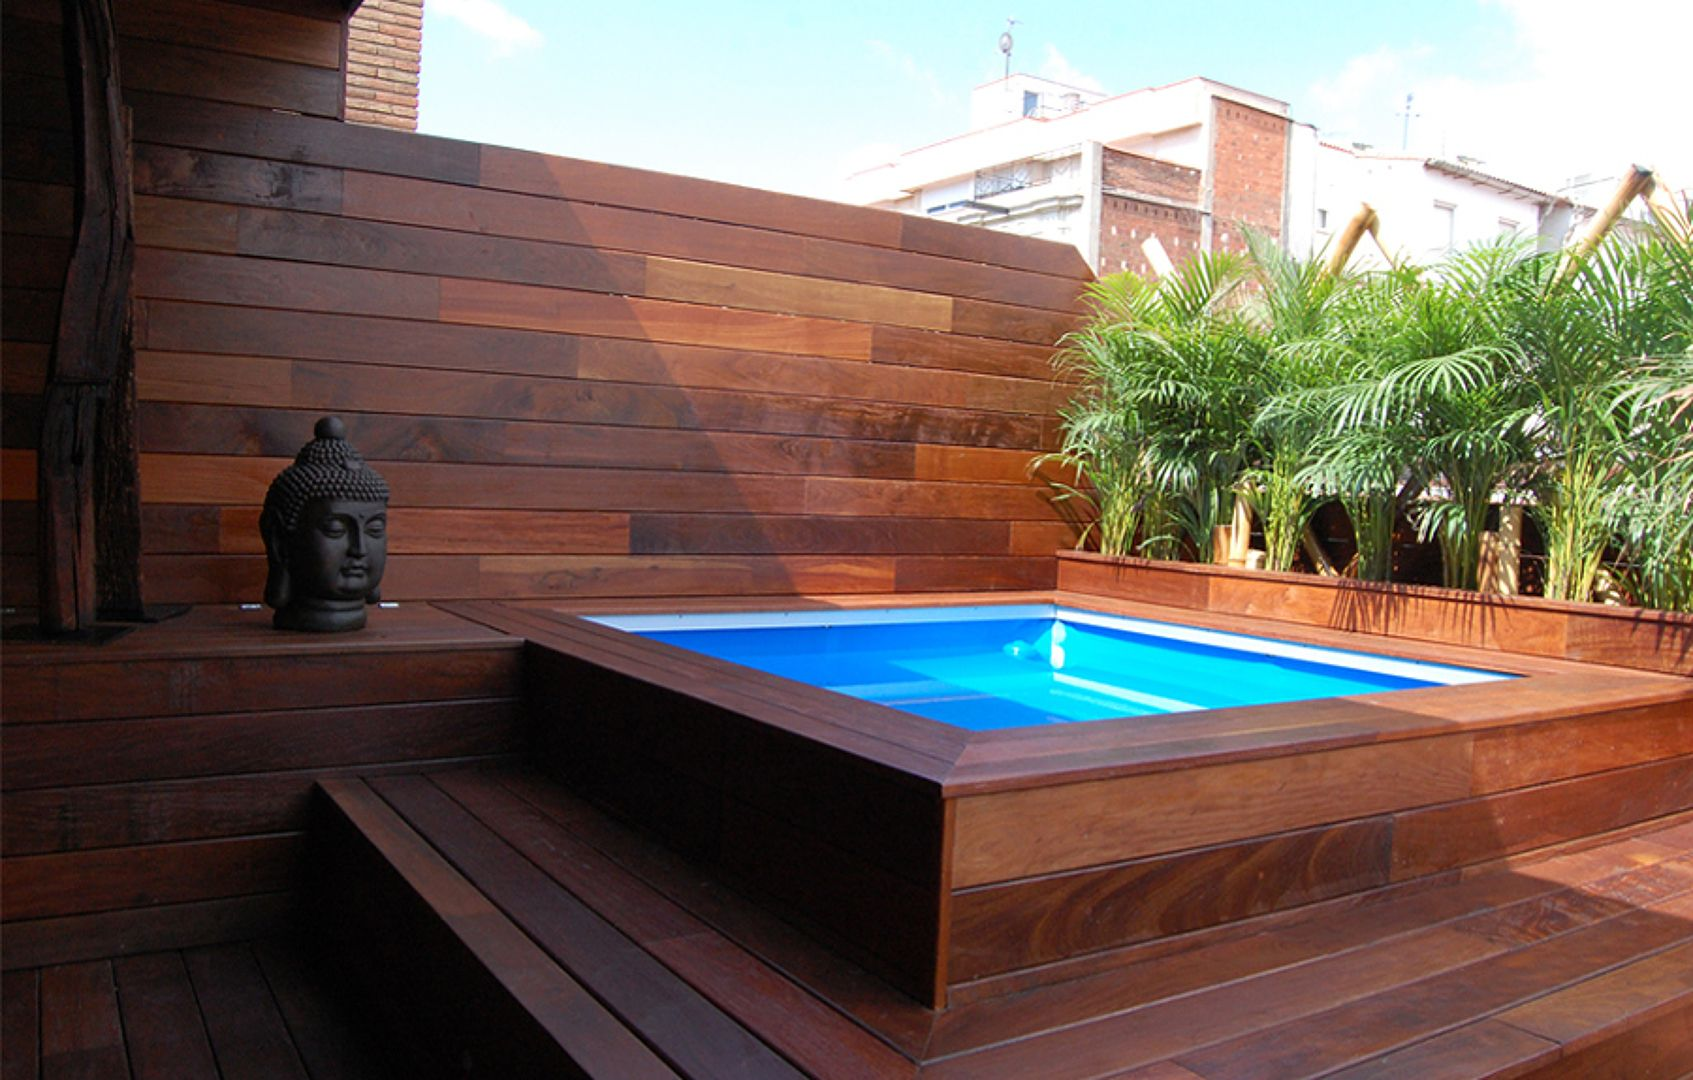 Piscina de fibra piscinas como fazer pinterest for Piscina no terraco e perigoso